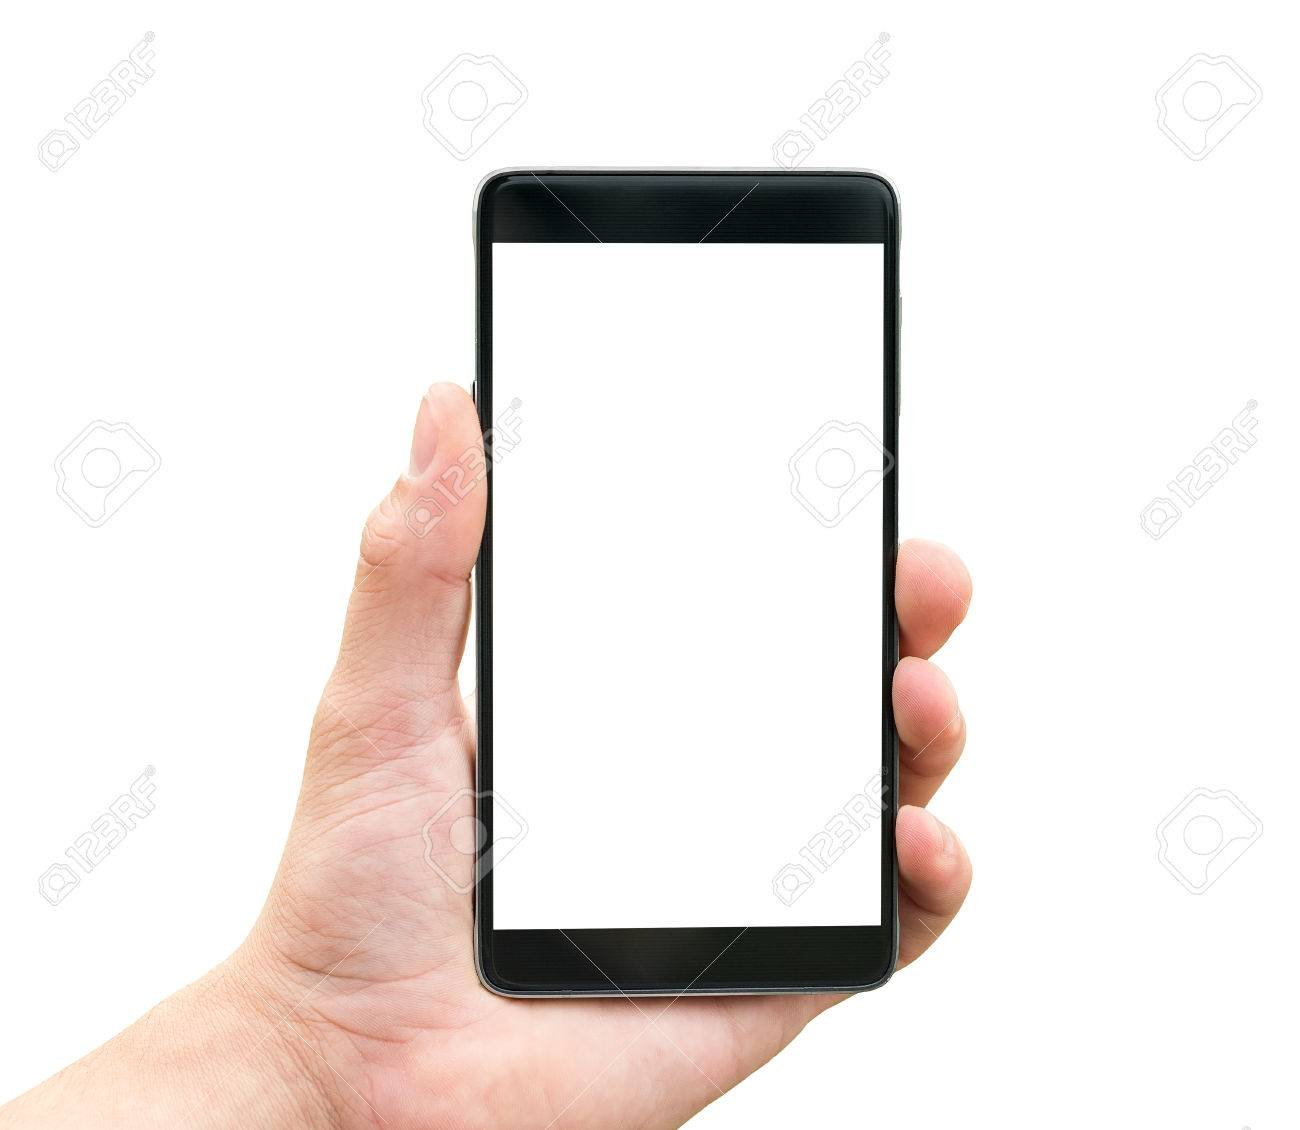 Hand holding mobile smart phone isolated on white background - 45009463